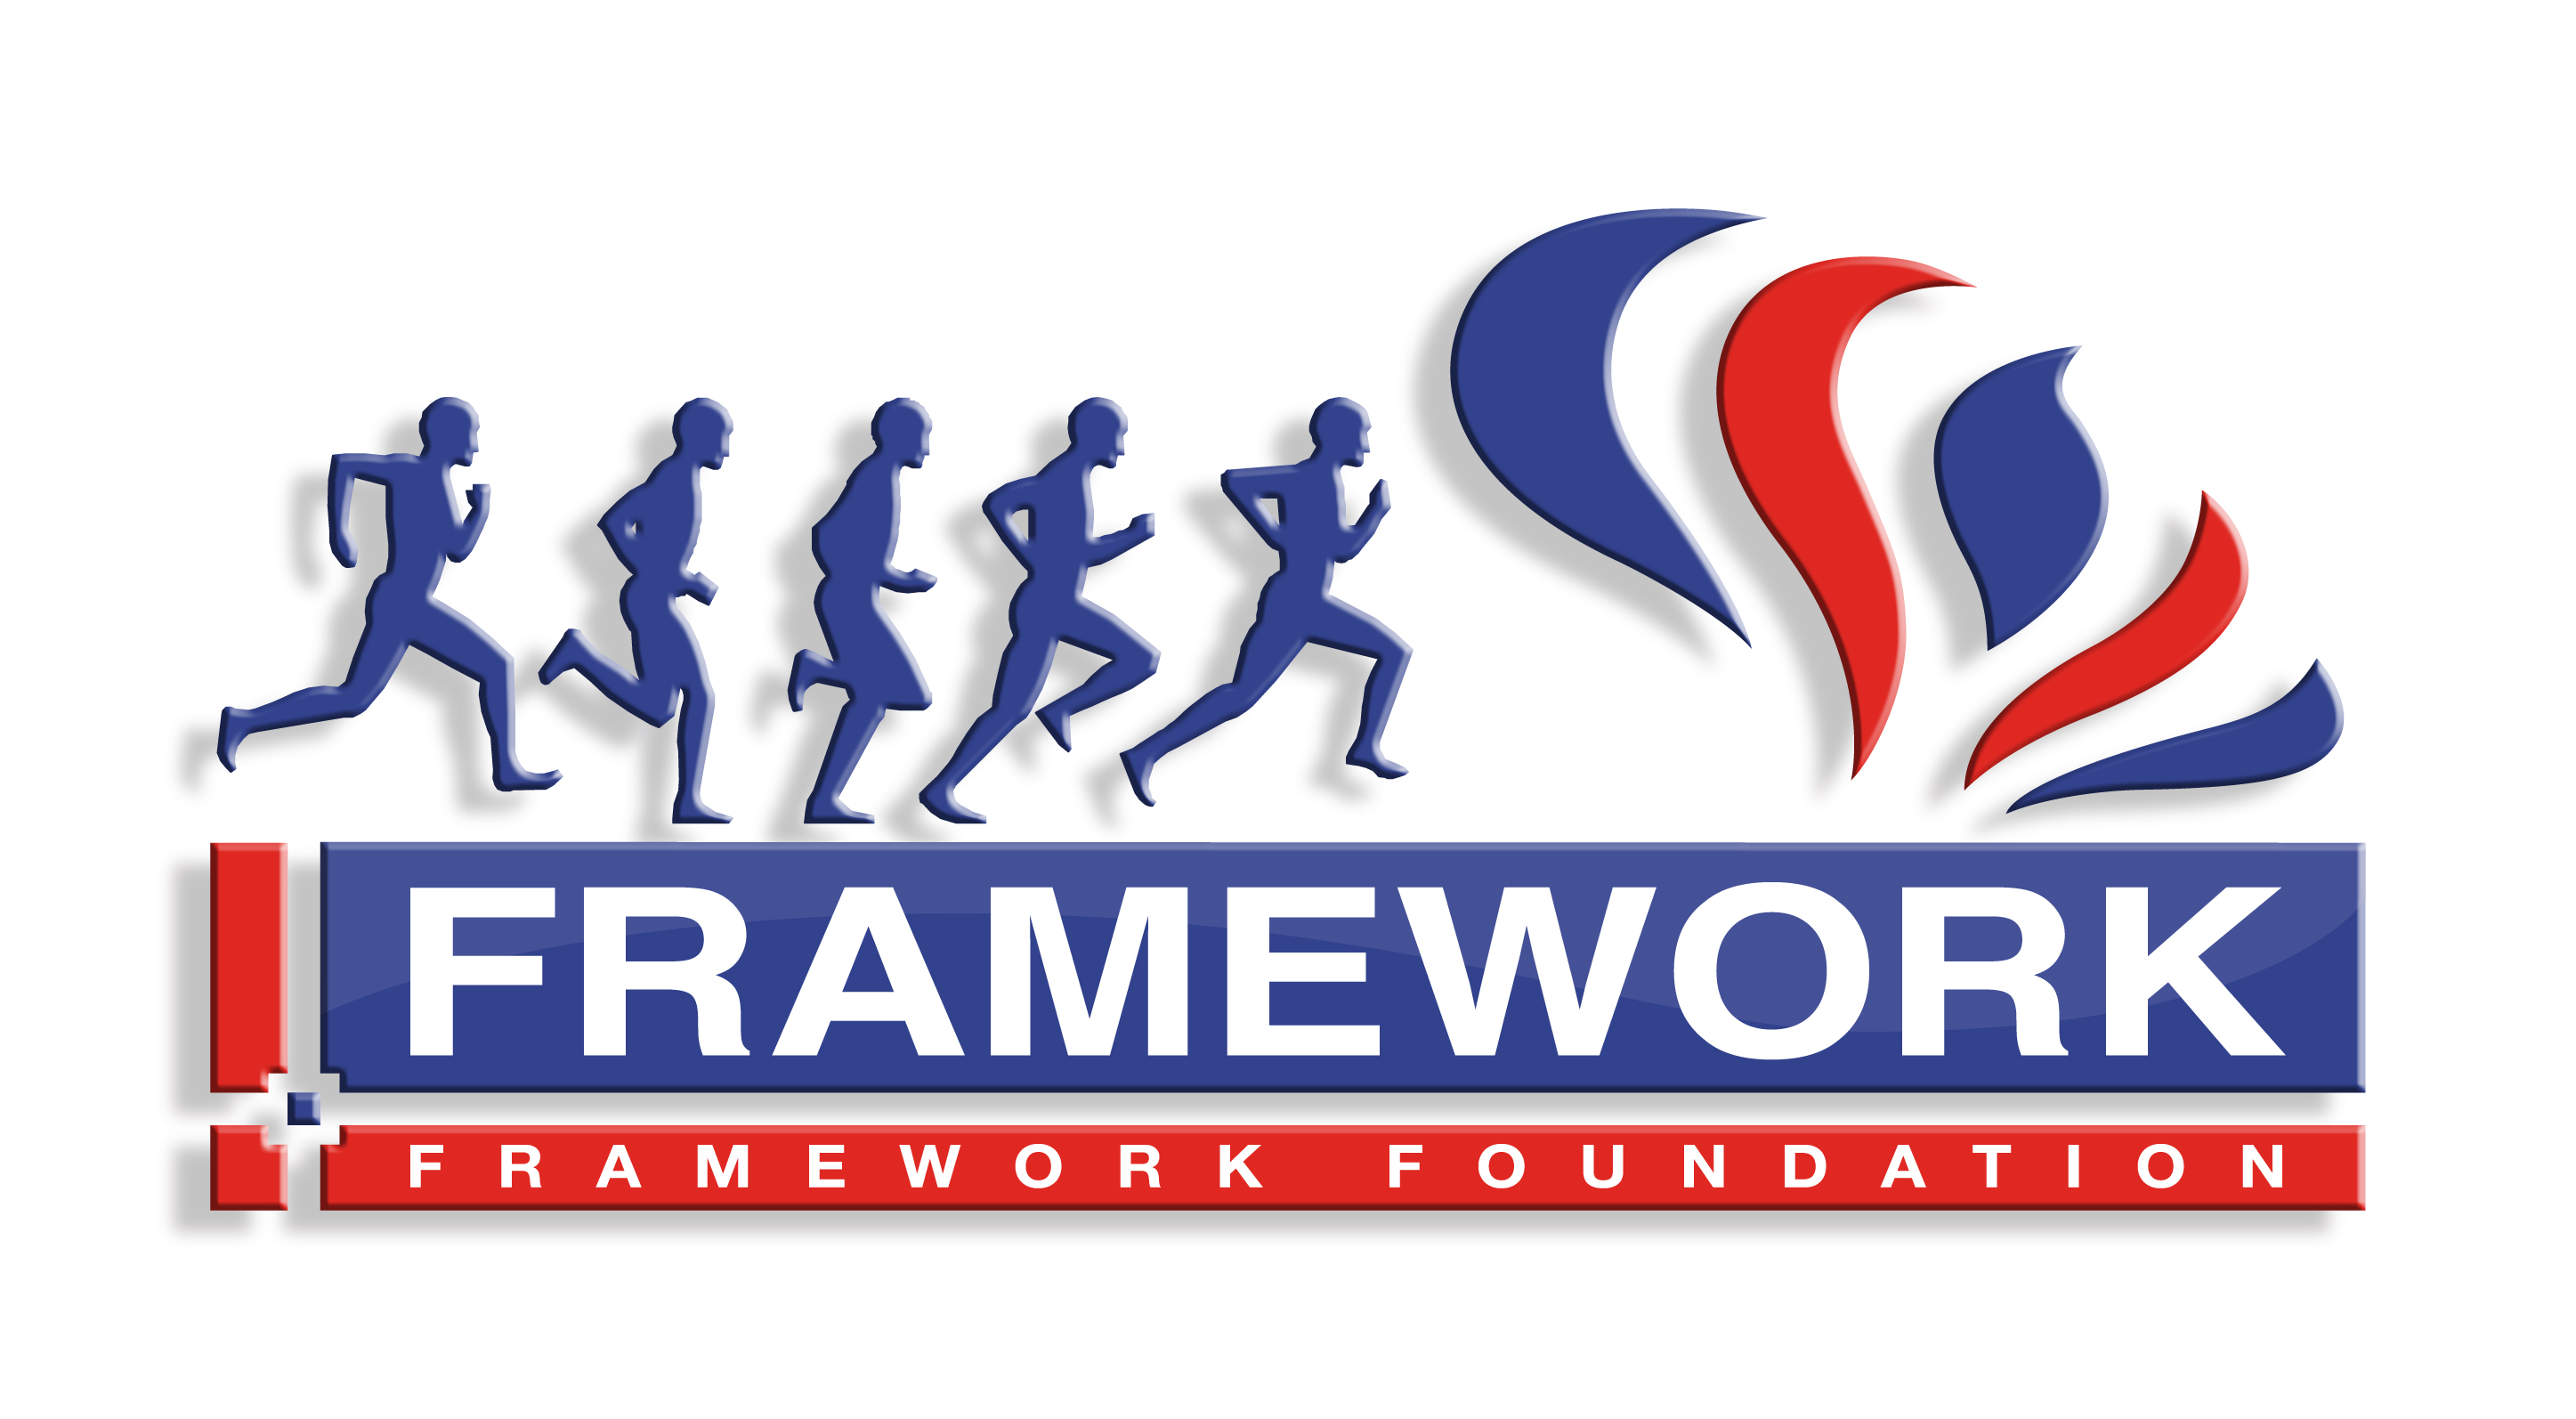 FRAMEWORK FOUNDATION Logo